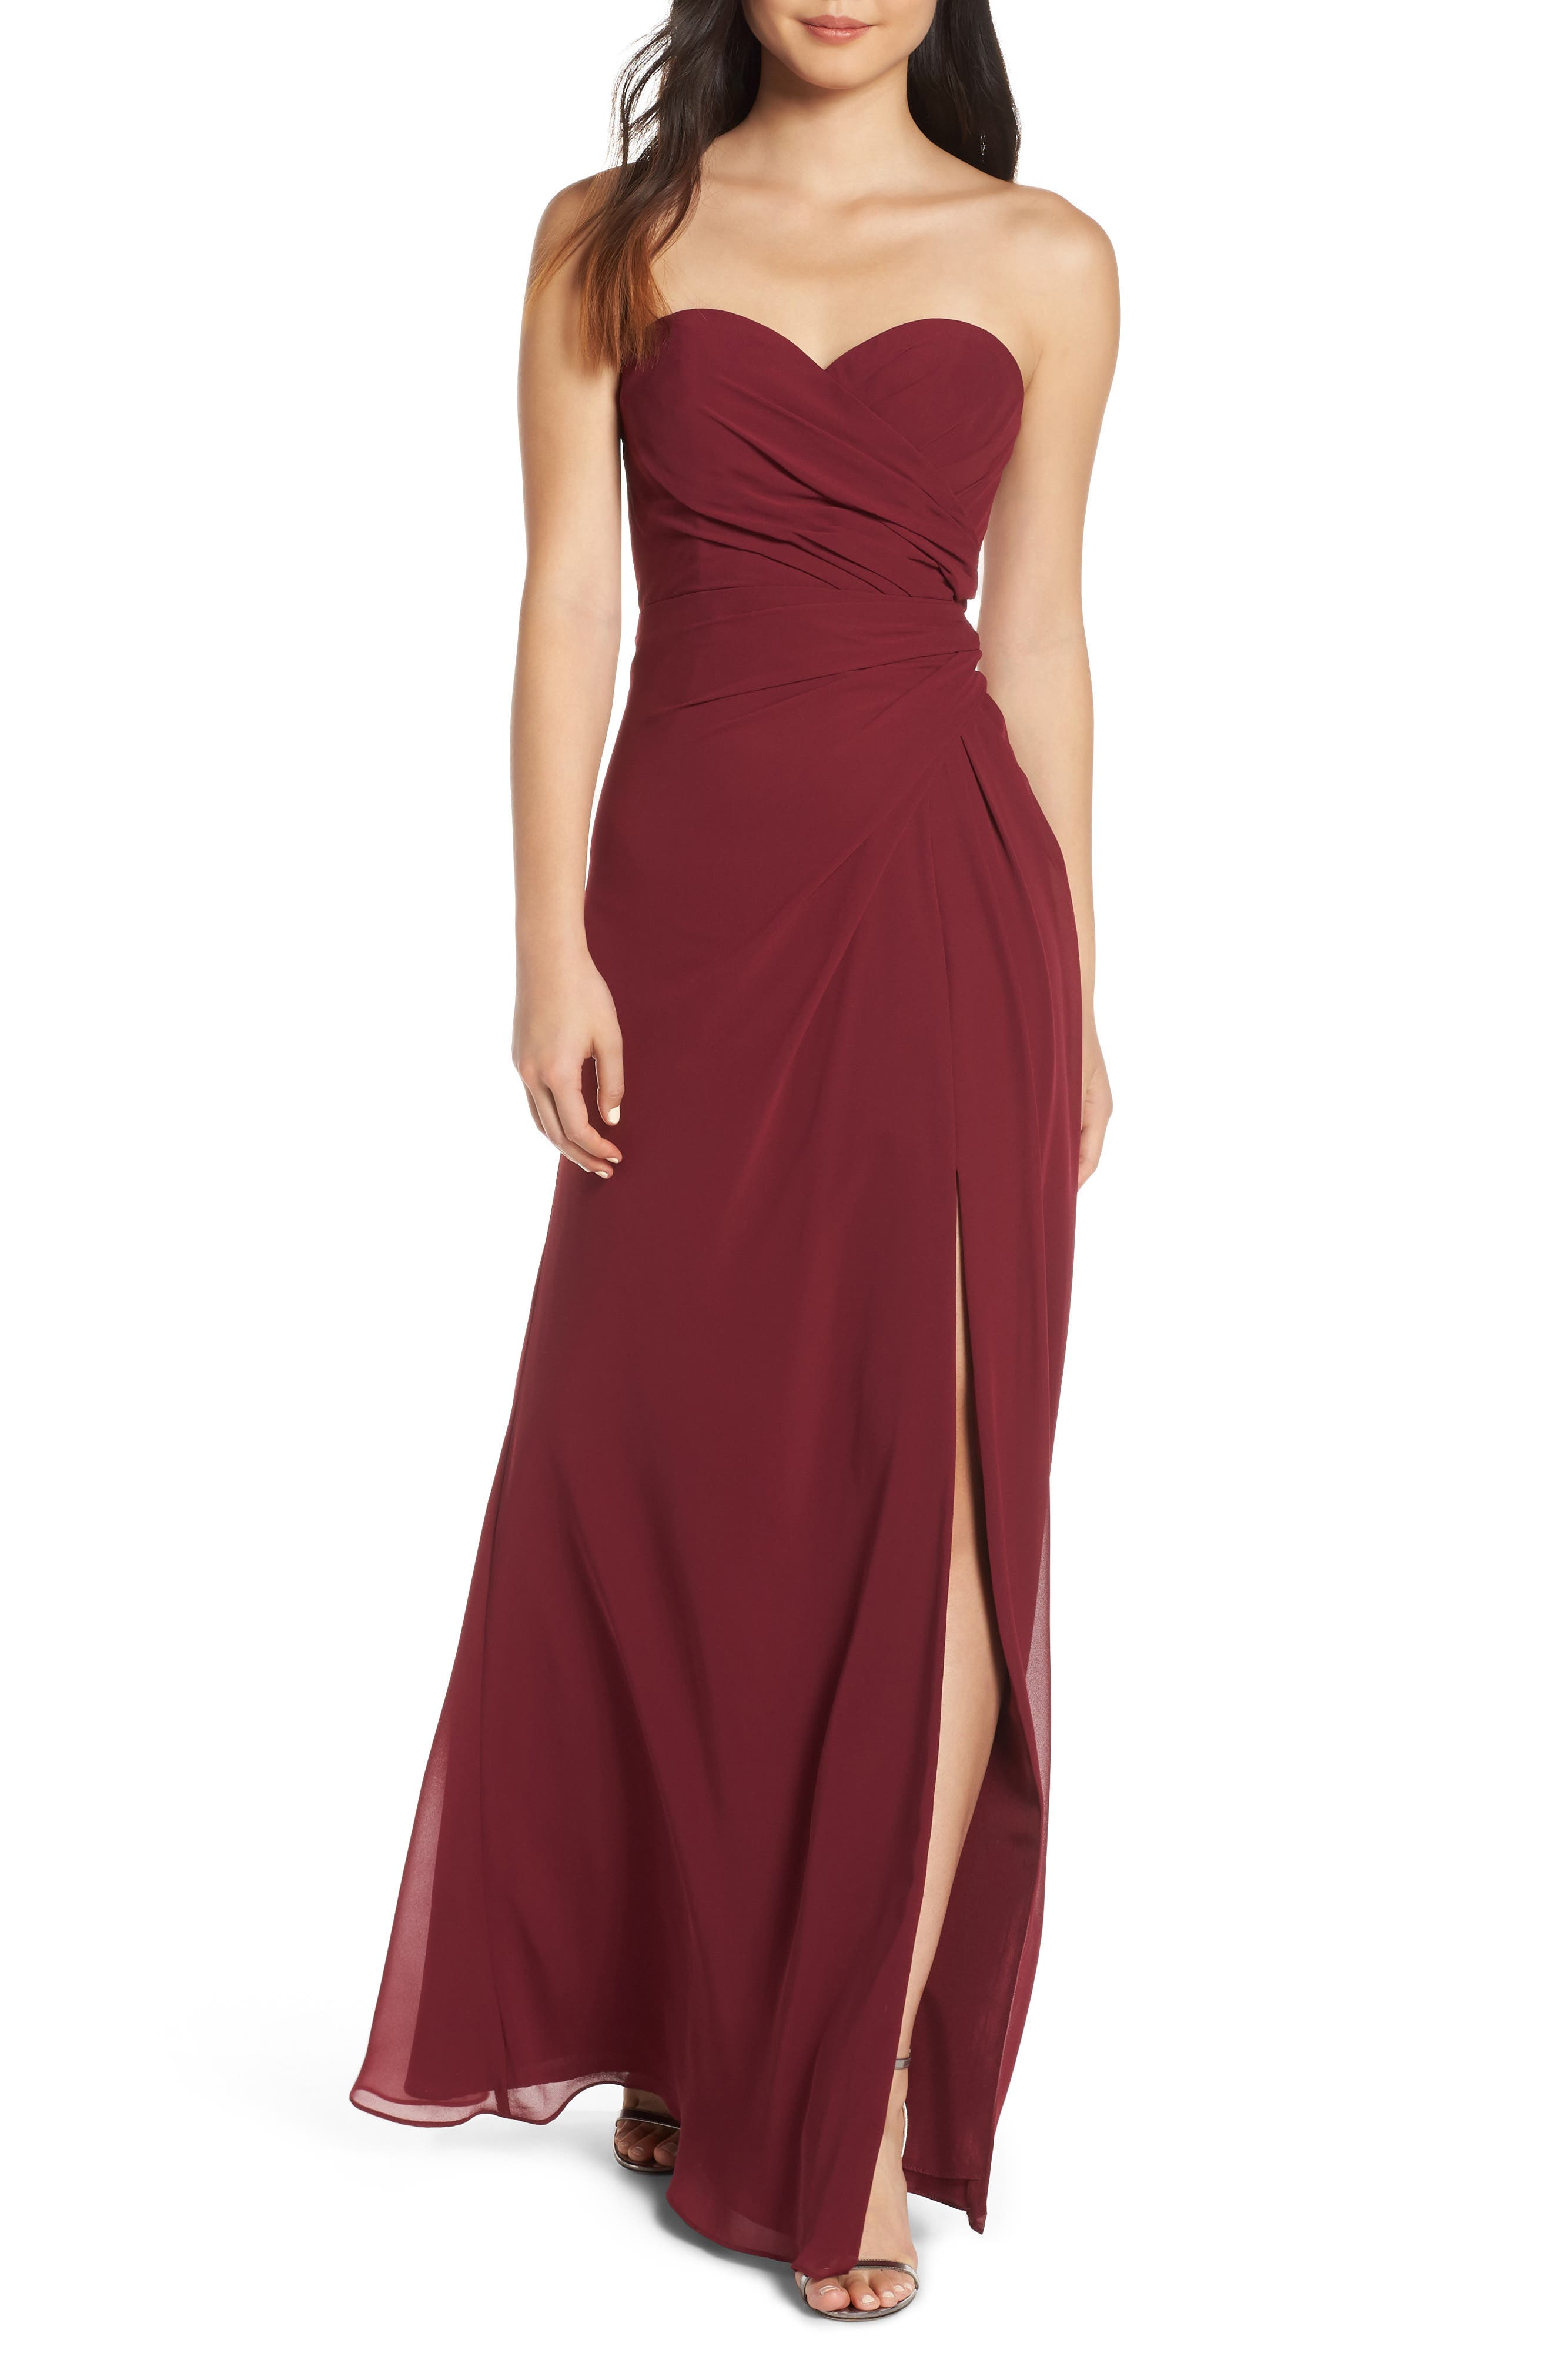 Hayley Paige Occasions Strapless Chiffon Evening Dress, Burgundy